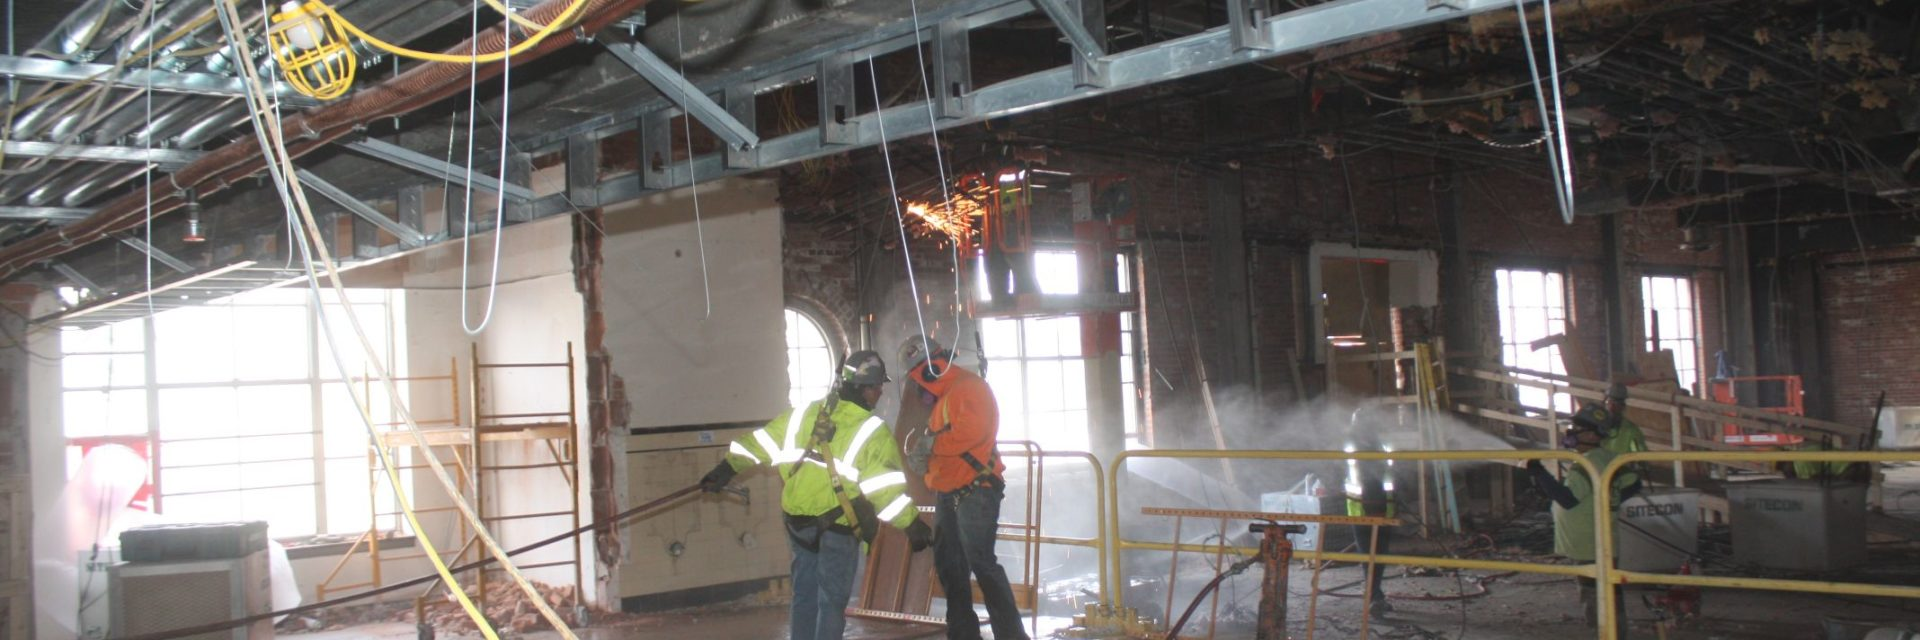 Jackhammering for 3-story Atrium Stair